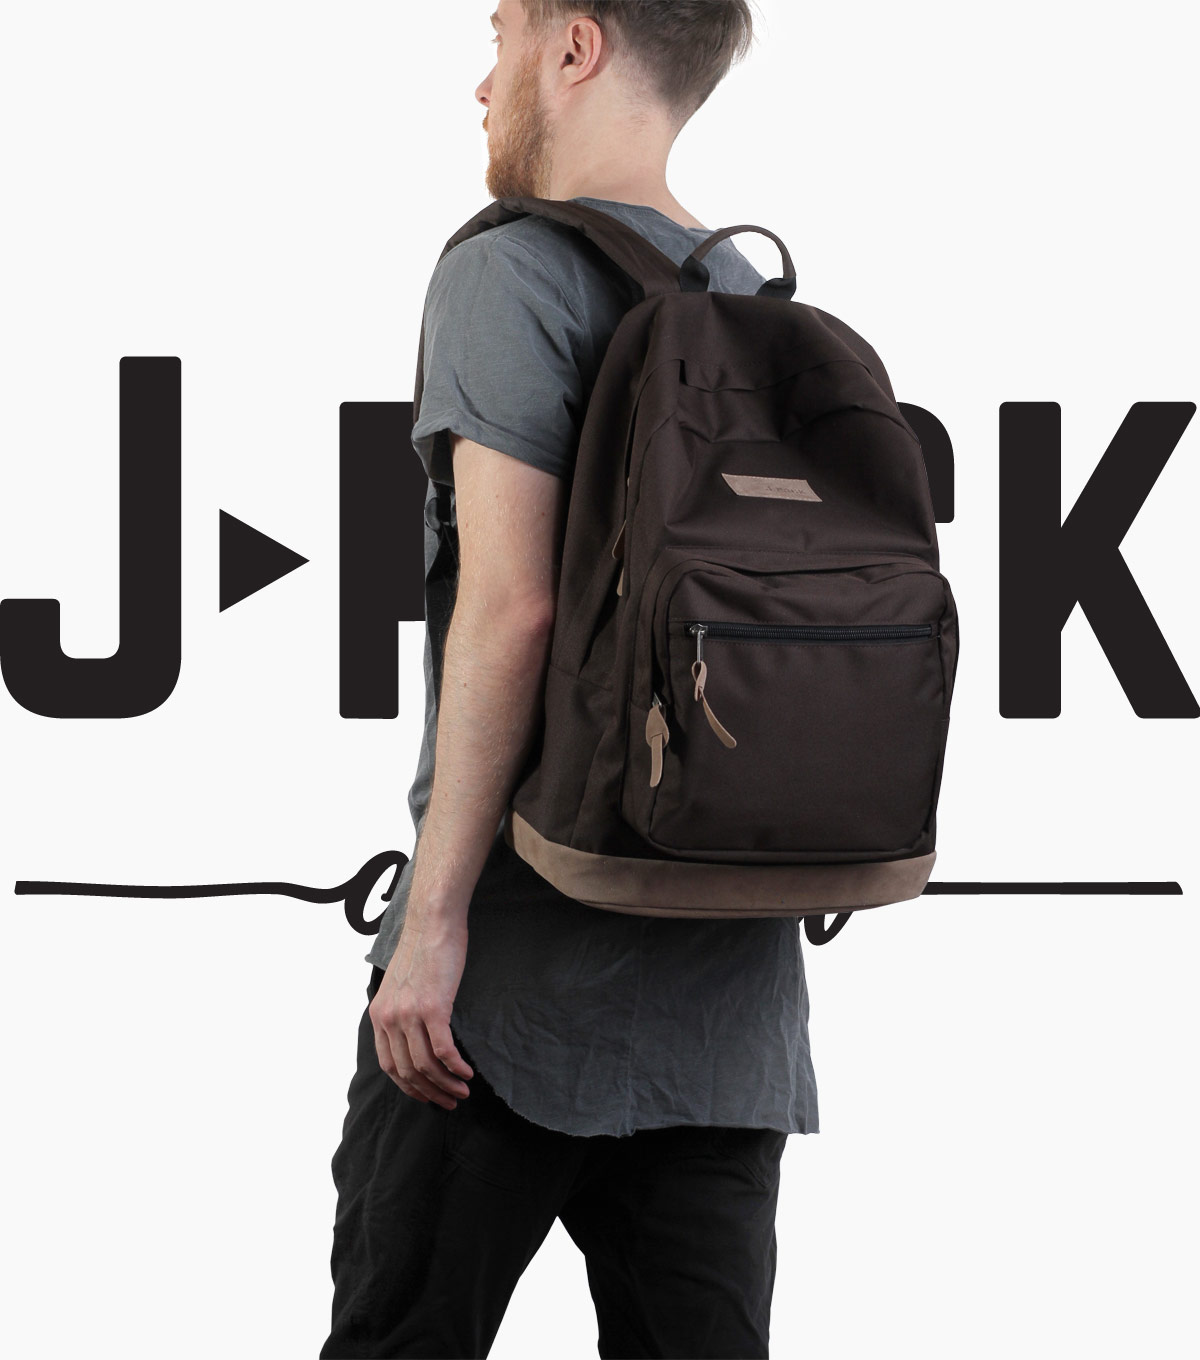 Рюкзак J-pack Original brown